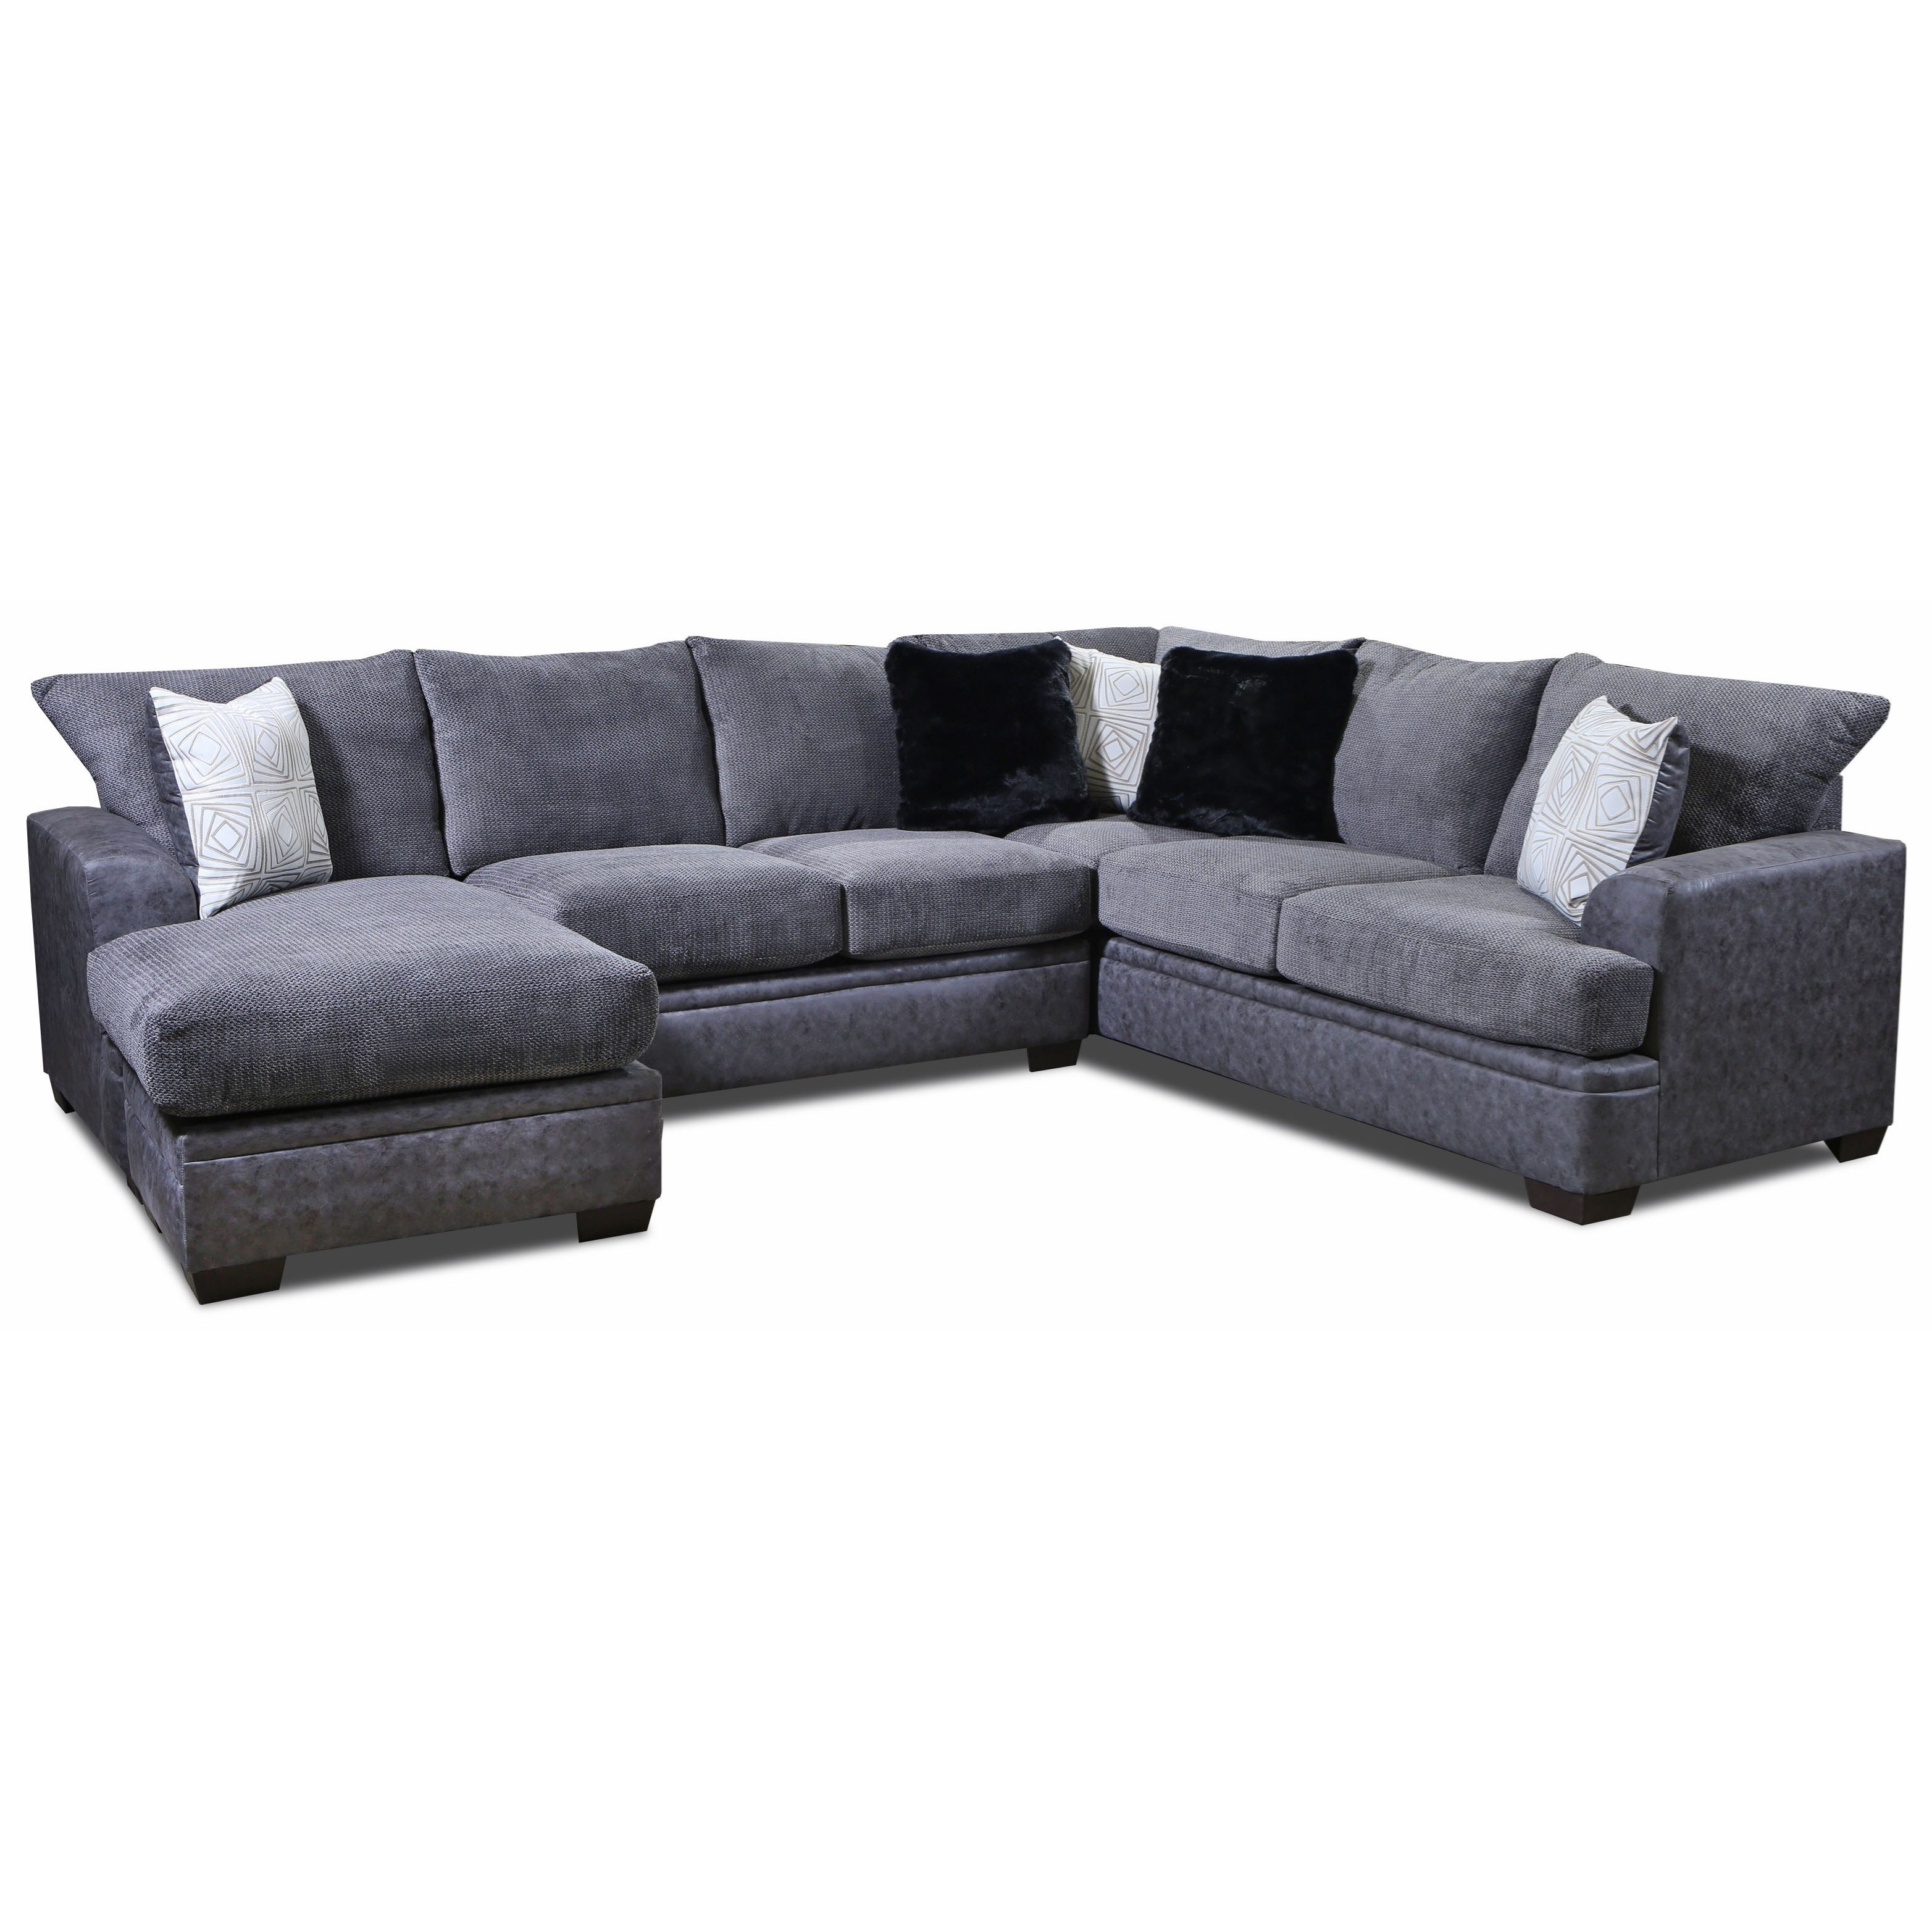 6800 Sectional Sofa with Left Side Chaise by Vendor 610 at Becker Furniture